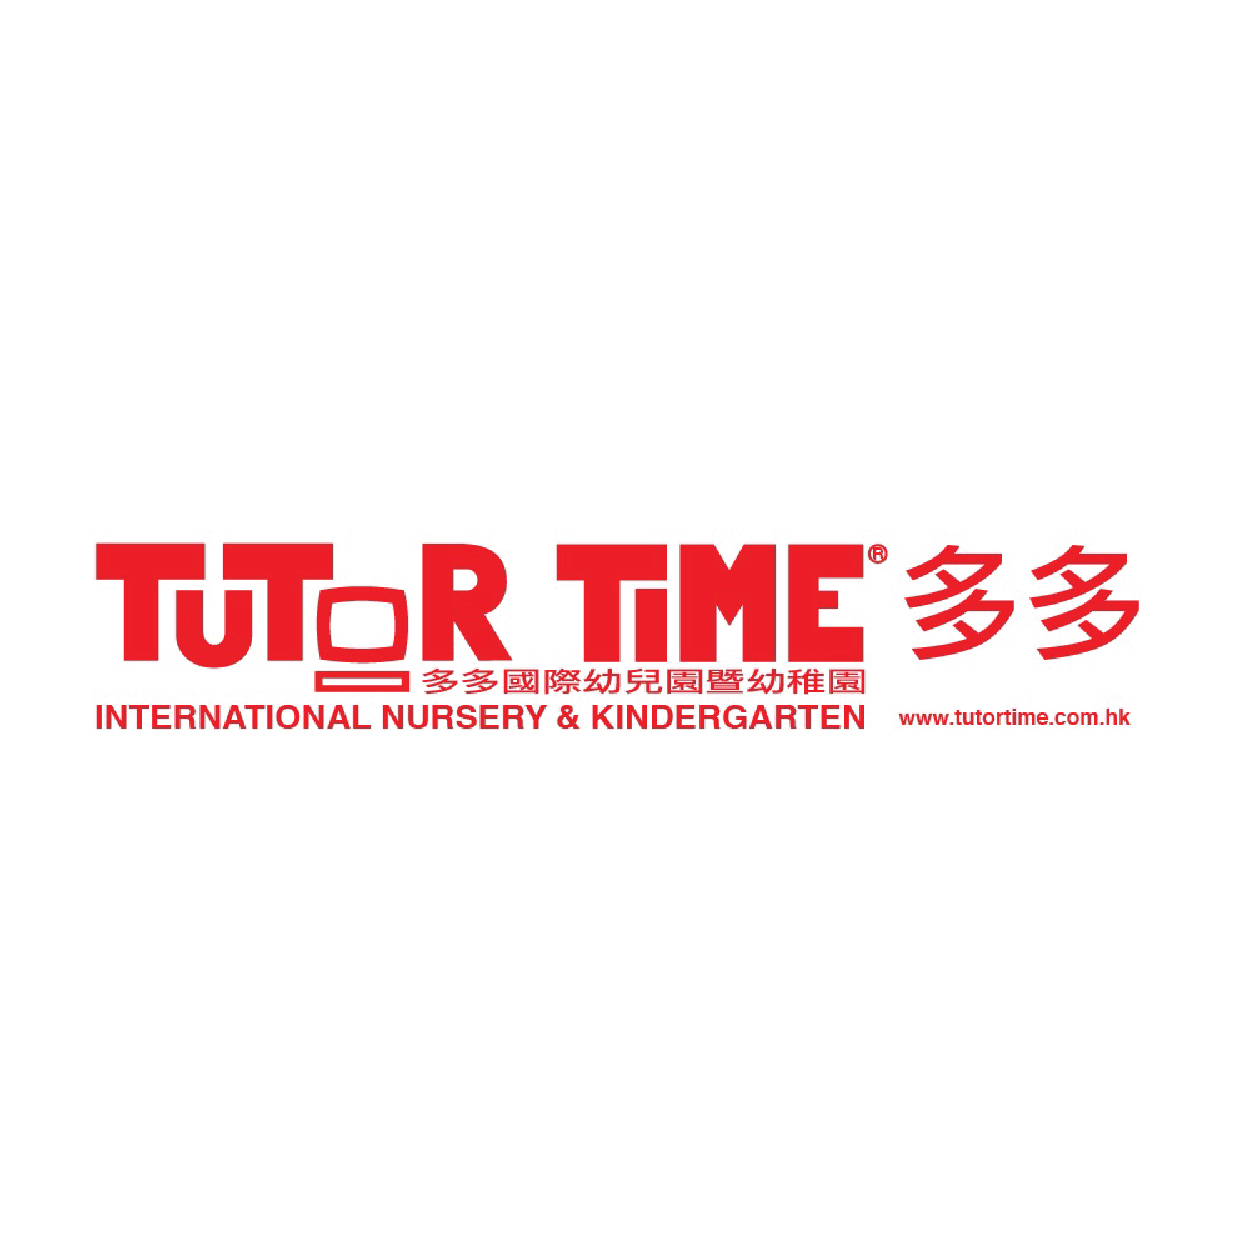 Tutor Time International Nursery & Kindergarten